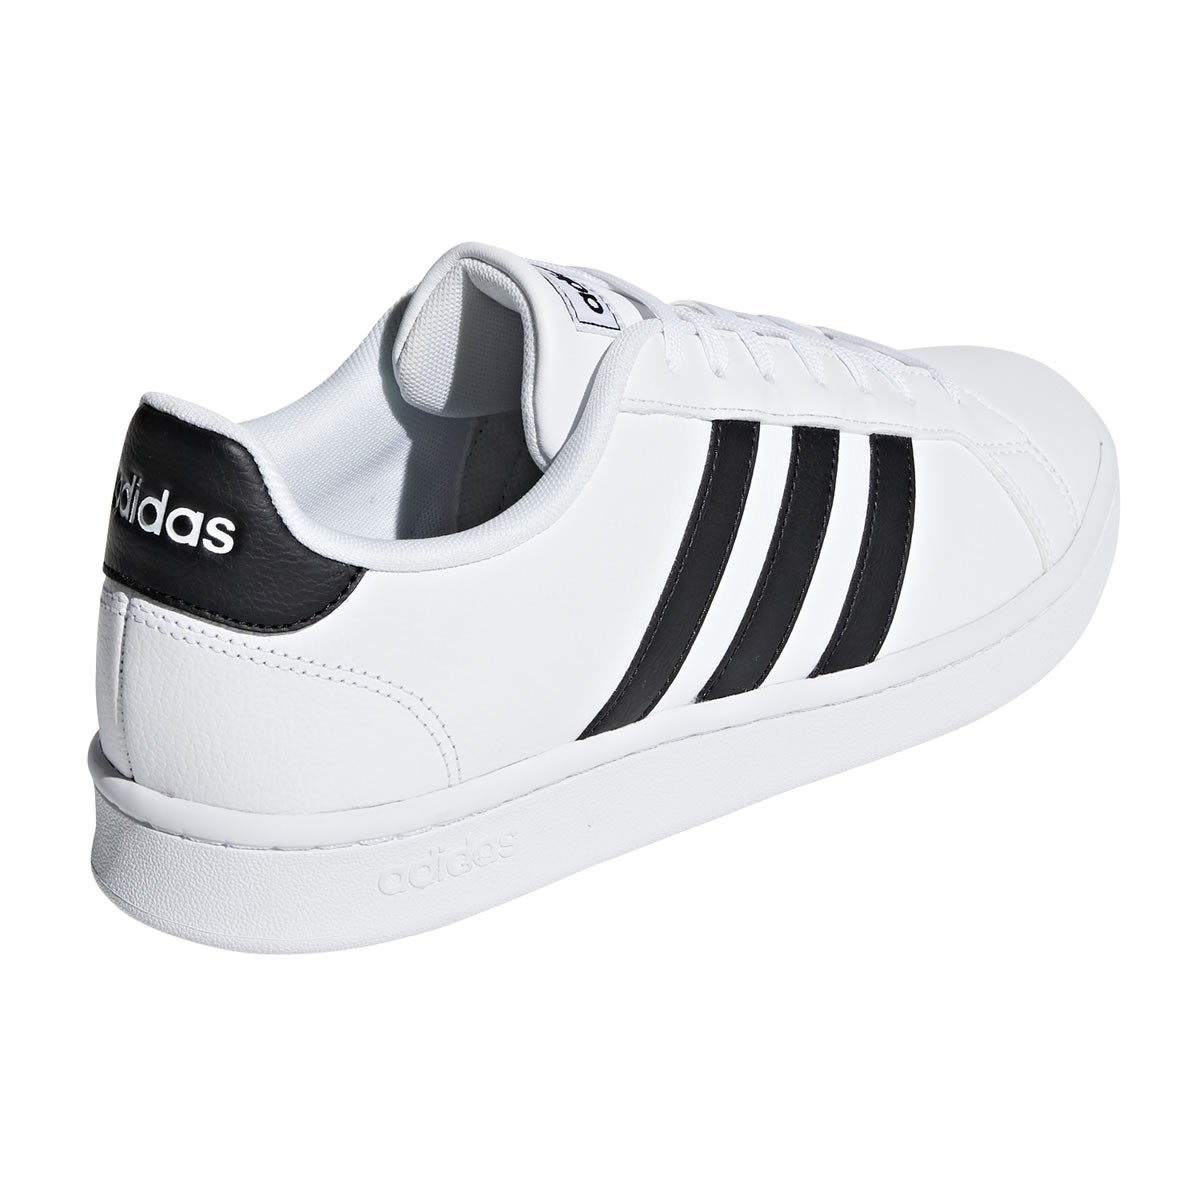 d0bf1f42a5 Adidas Grand Court - Mens Sneakers - Cloud White Core Black